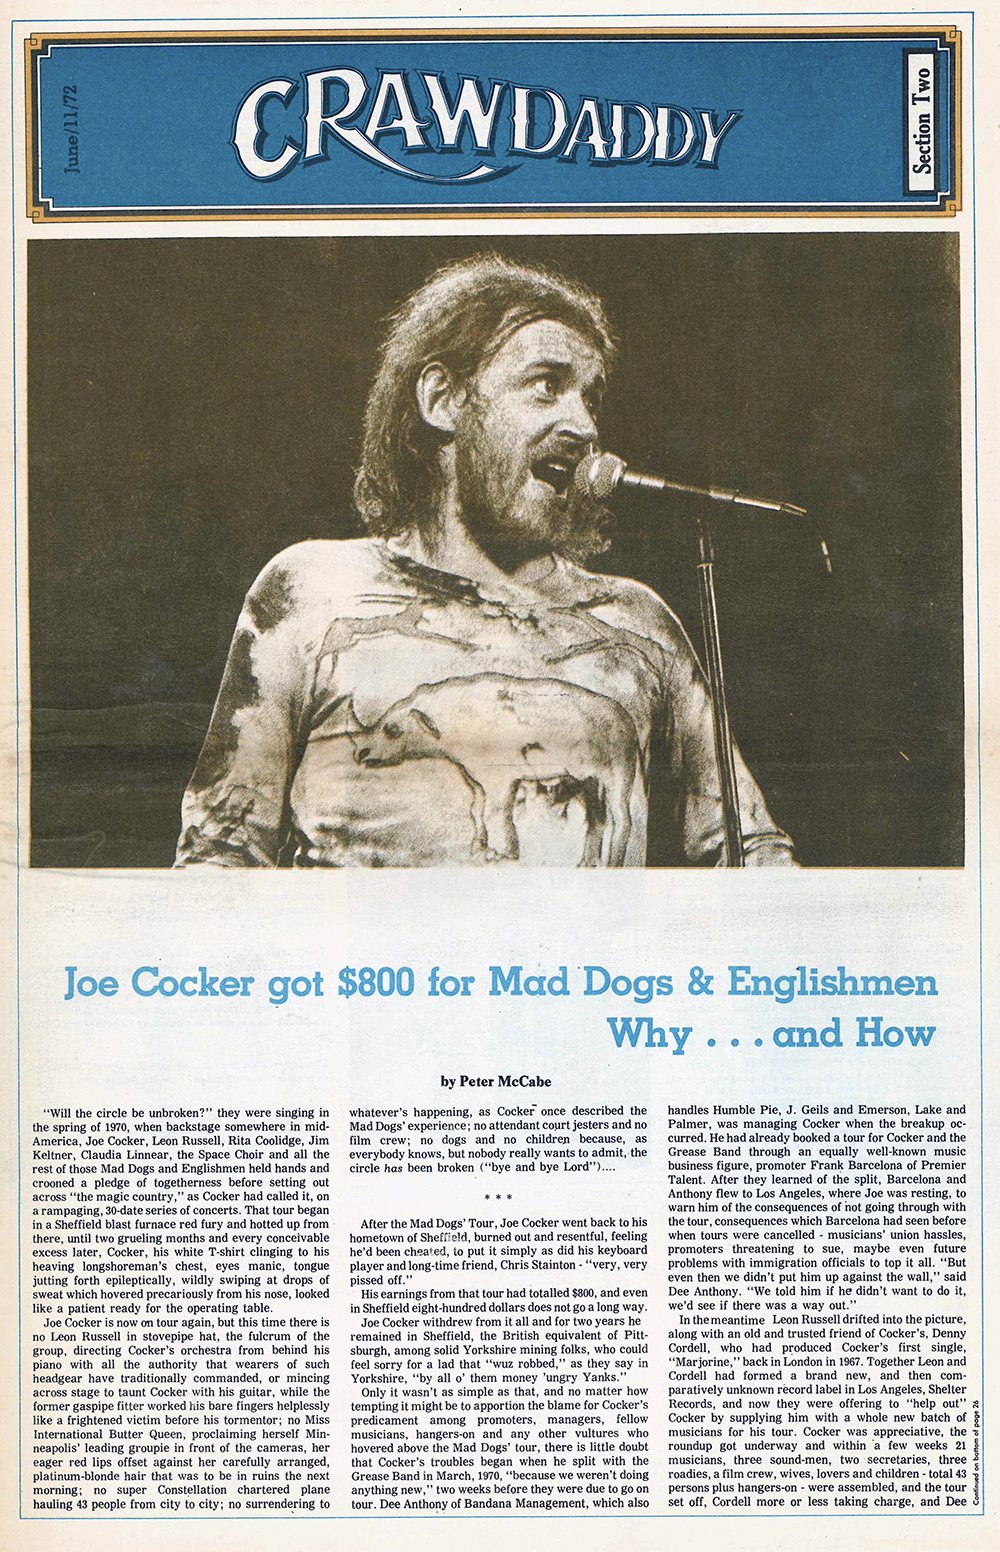 Joe Cocker 1972 Crawdaddy Magazine